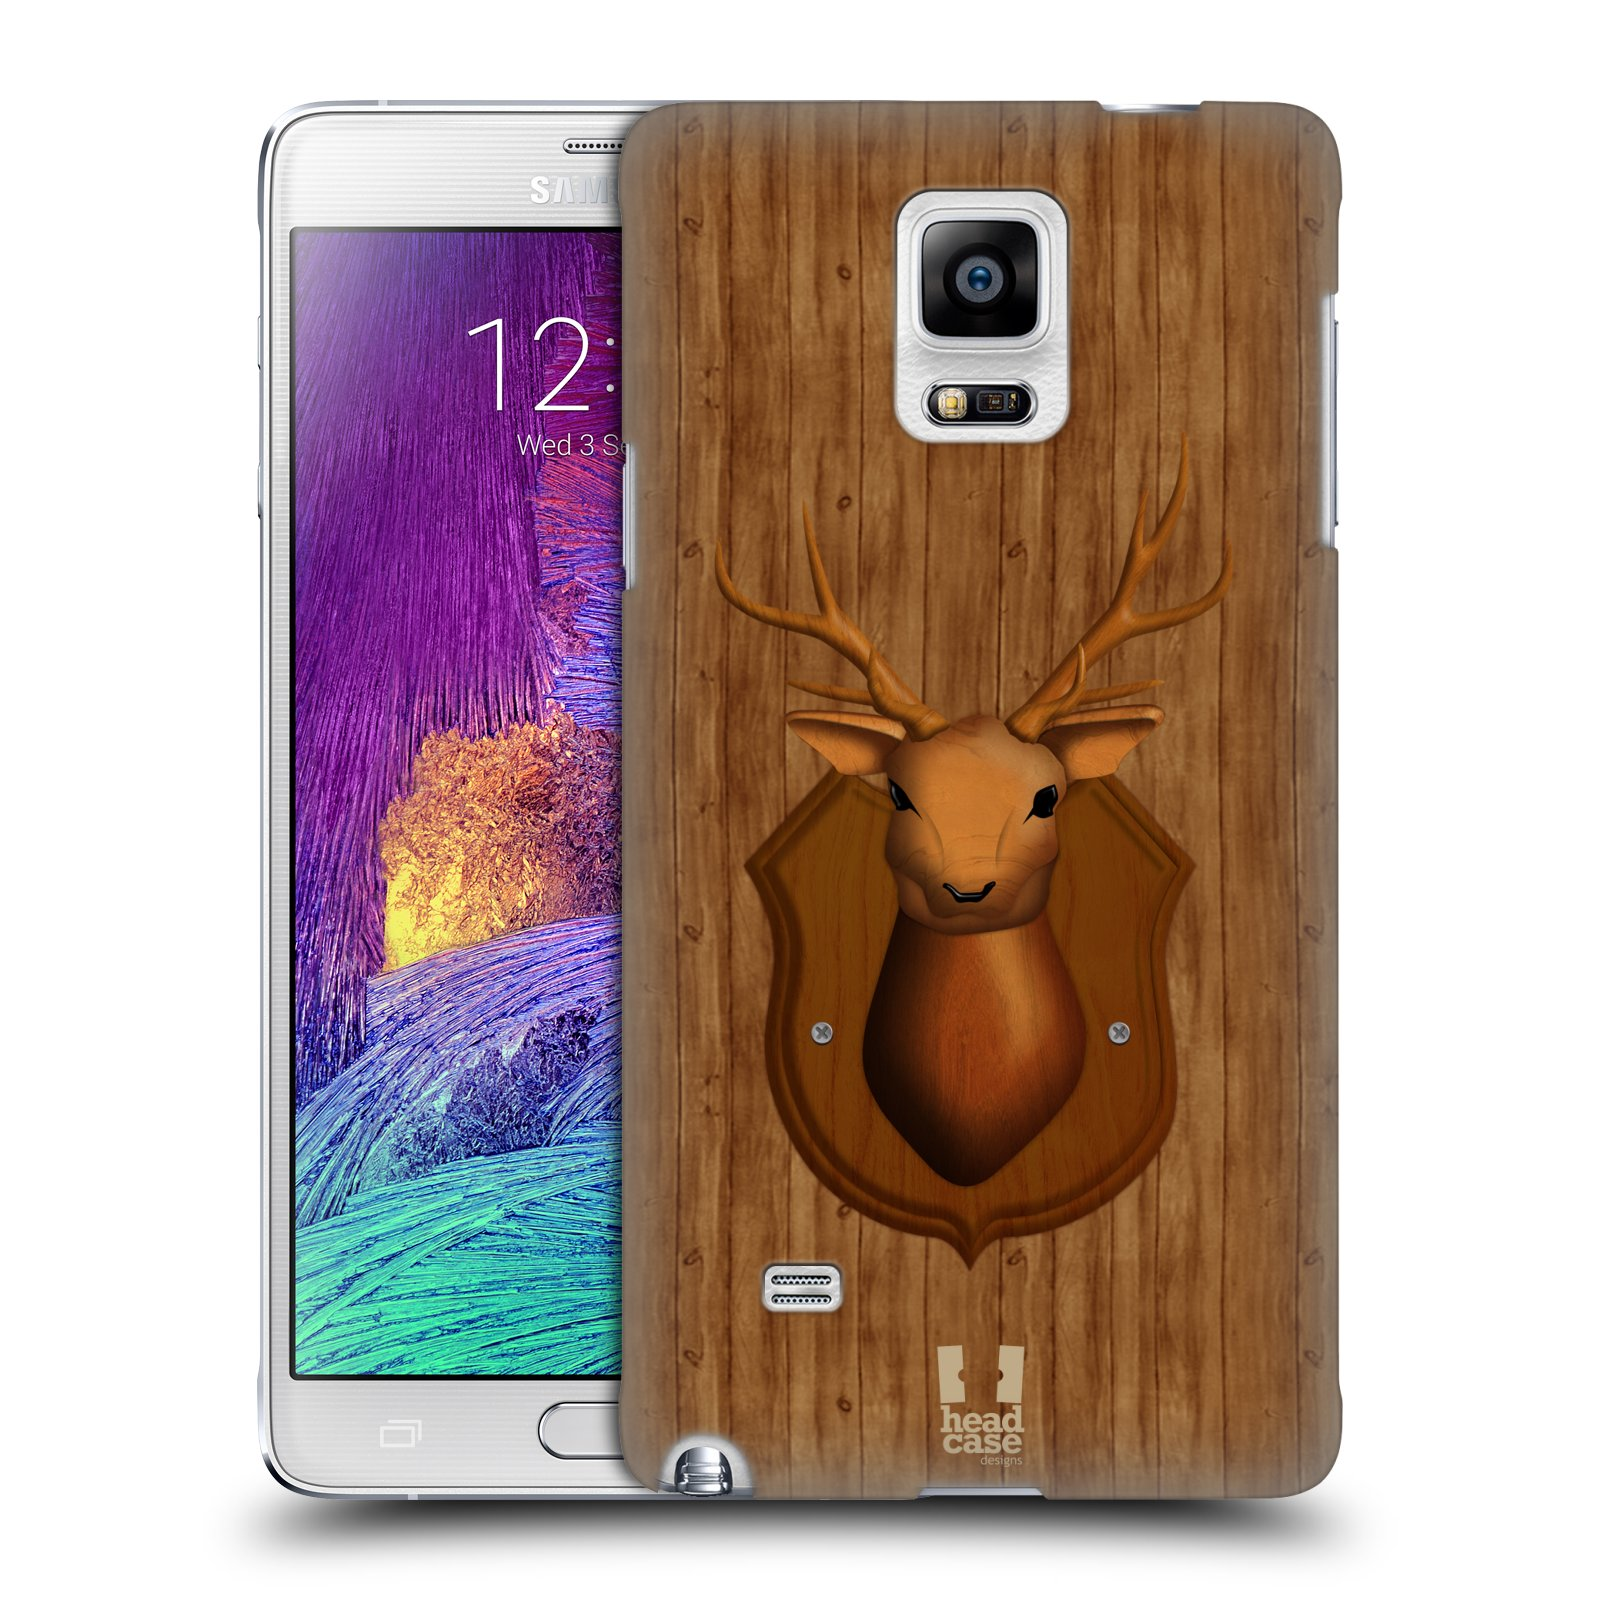 Head Case Designs Wood Craft Case Cover For Samsung Galaxy